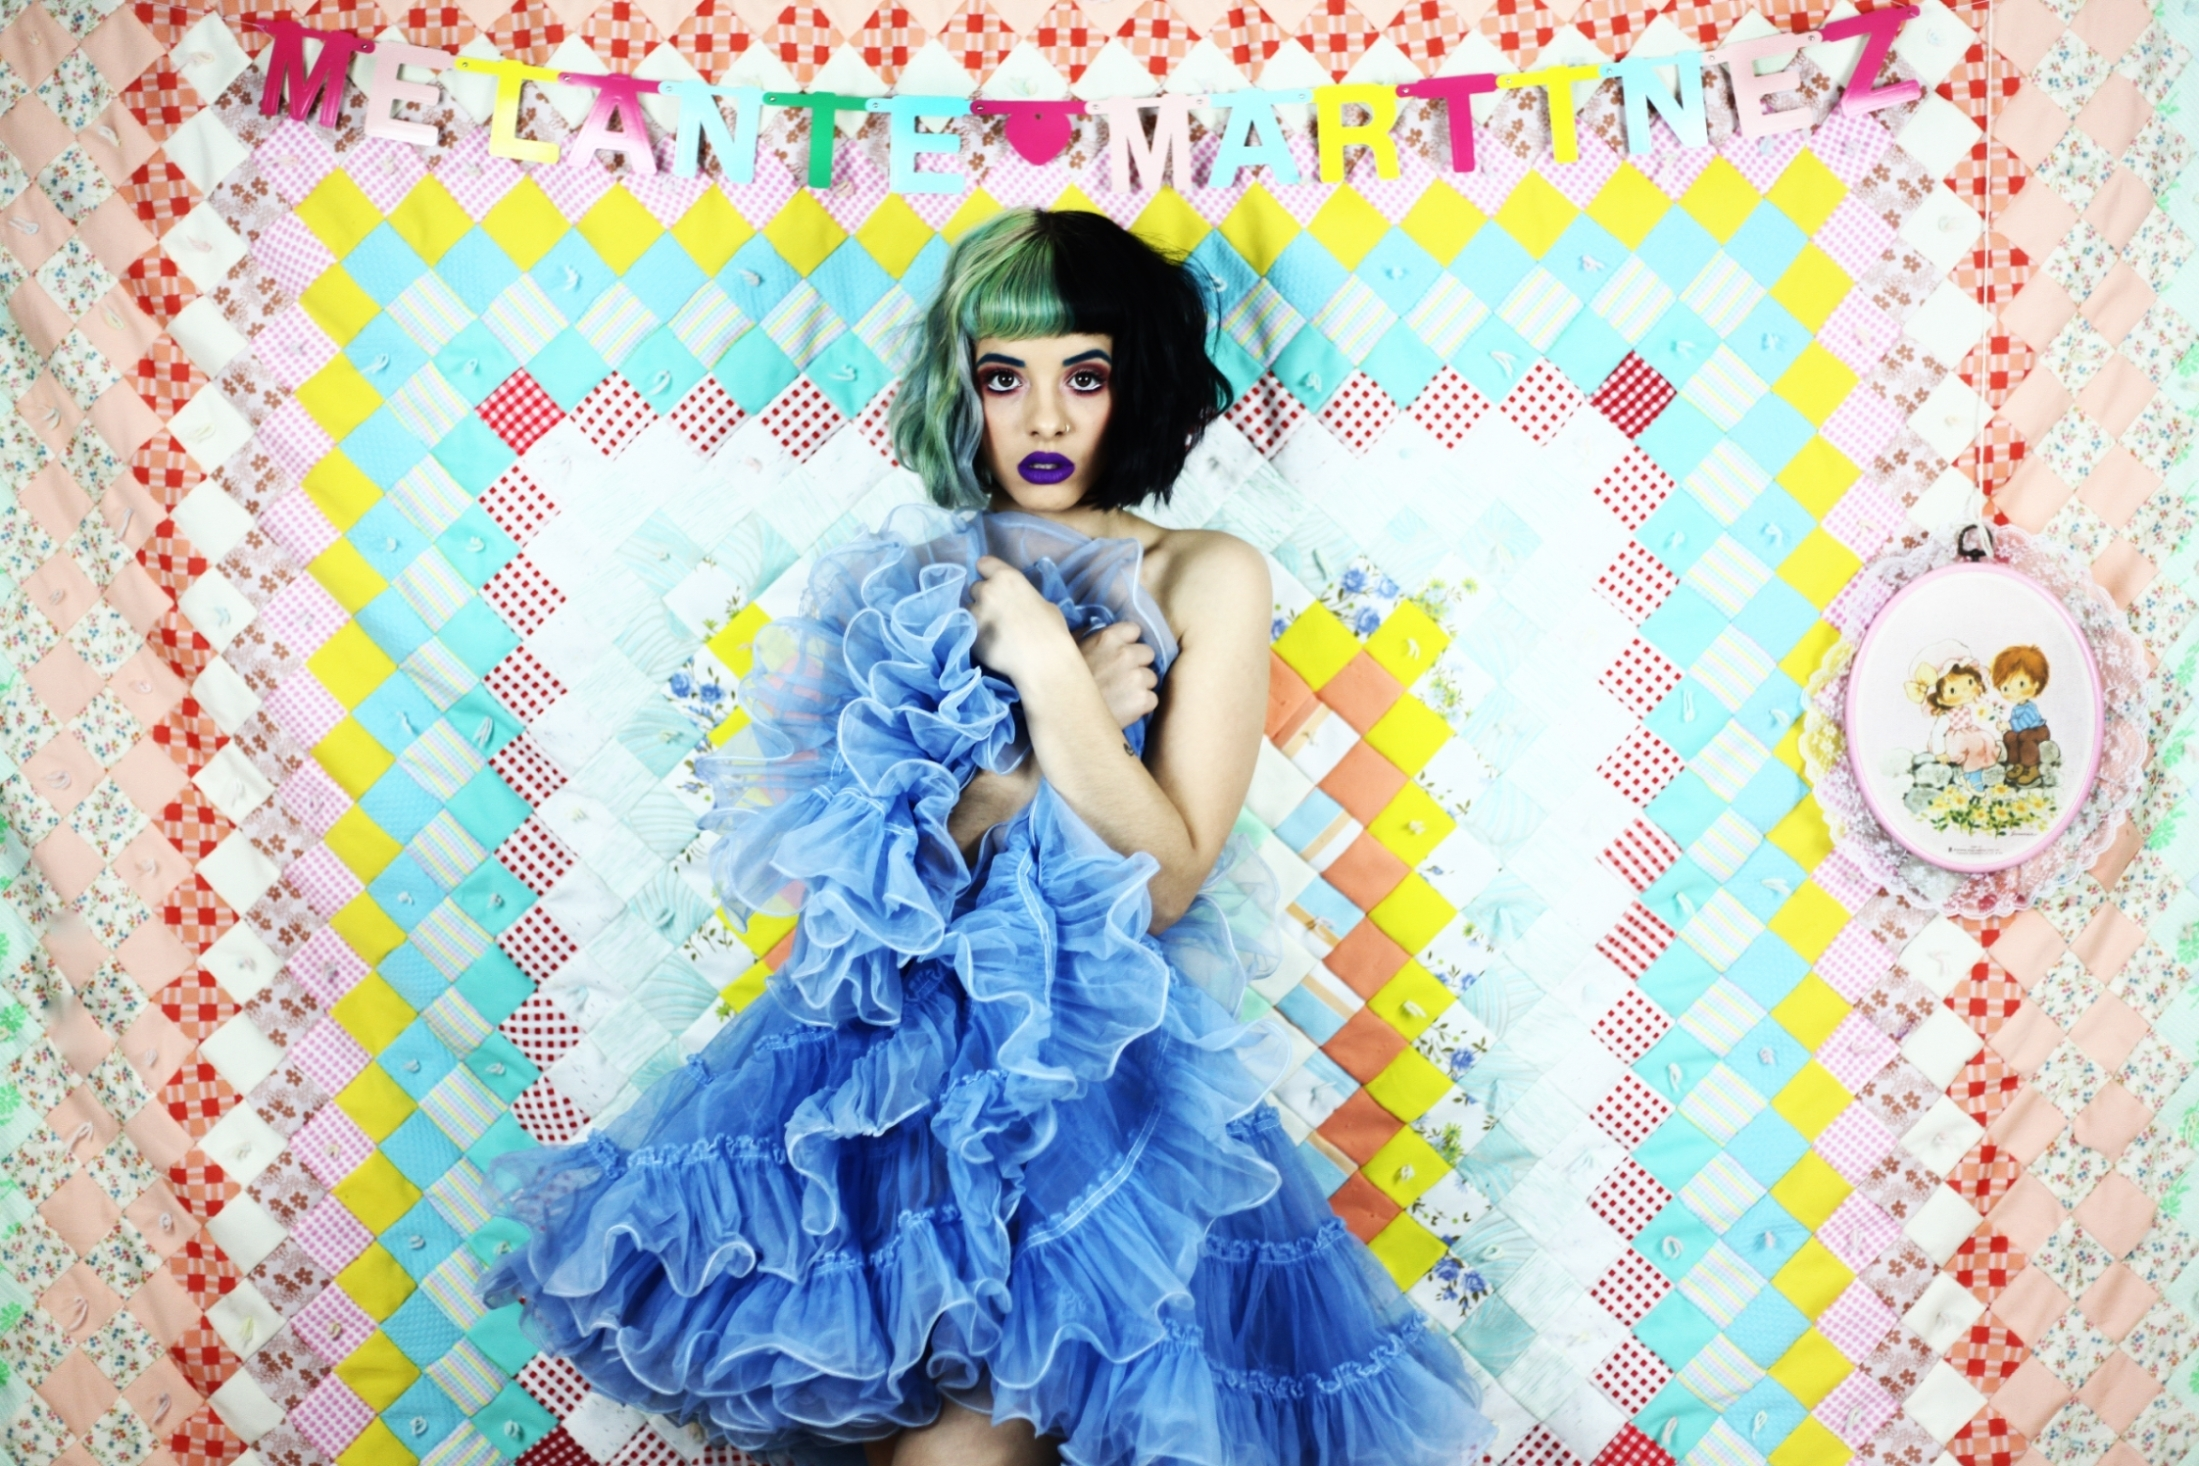 10 Latest Melanie Martinez Computer Wallpaper FULL HD 1920×1080 For PC Background